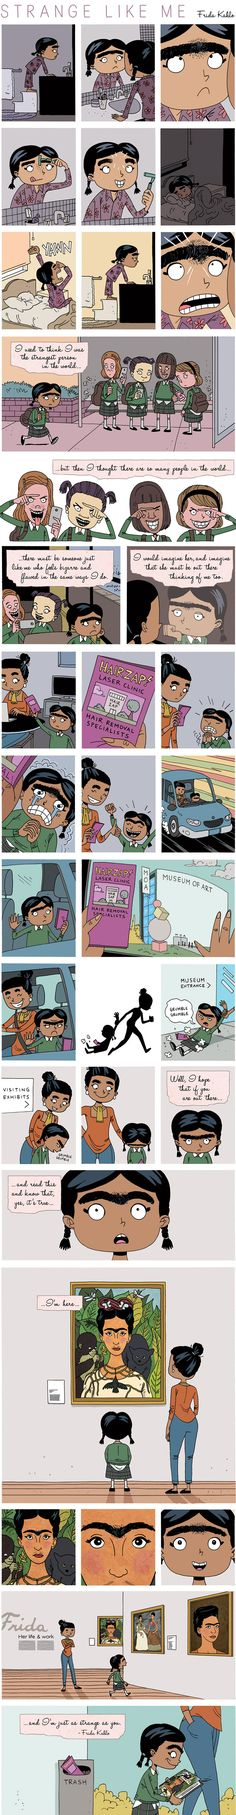 Frida Kahlo comic strip by Gavin Aung Than on Bored Panda. There are many more lie this including Eleanor Roosevelt, Maya Angelou, Vincent Van Gogh…